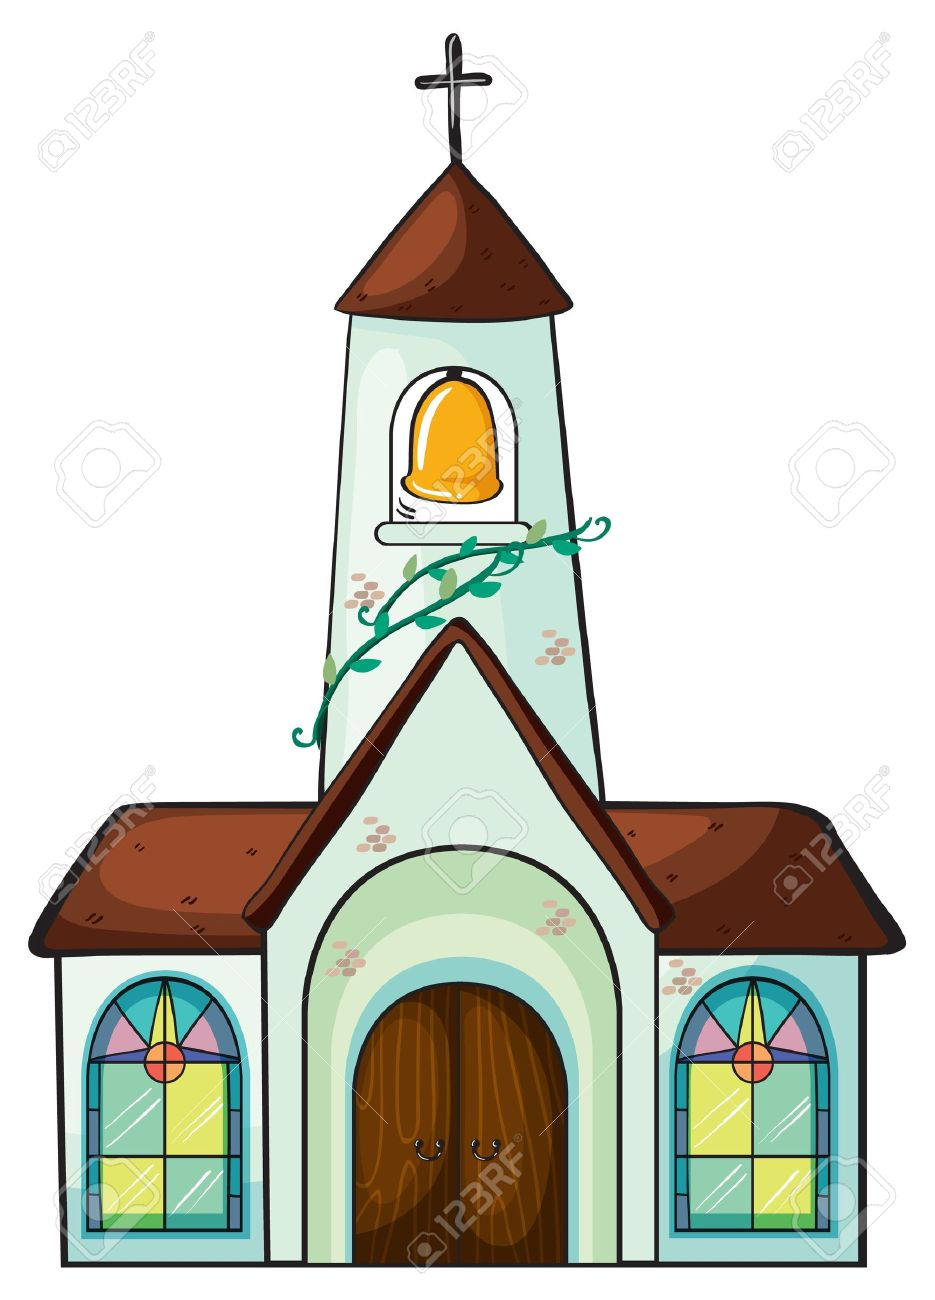 Open church door clipart - Open Church Door Clipart Church Door Stock Photos Pictures Royalty Free Church Door